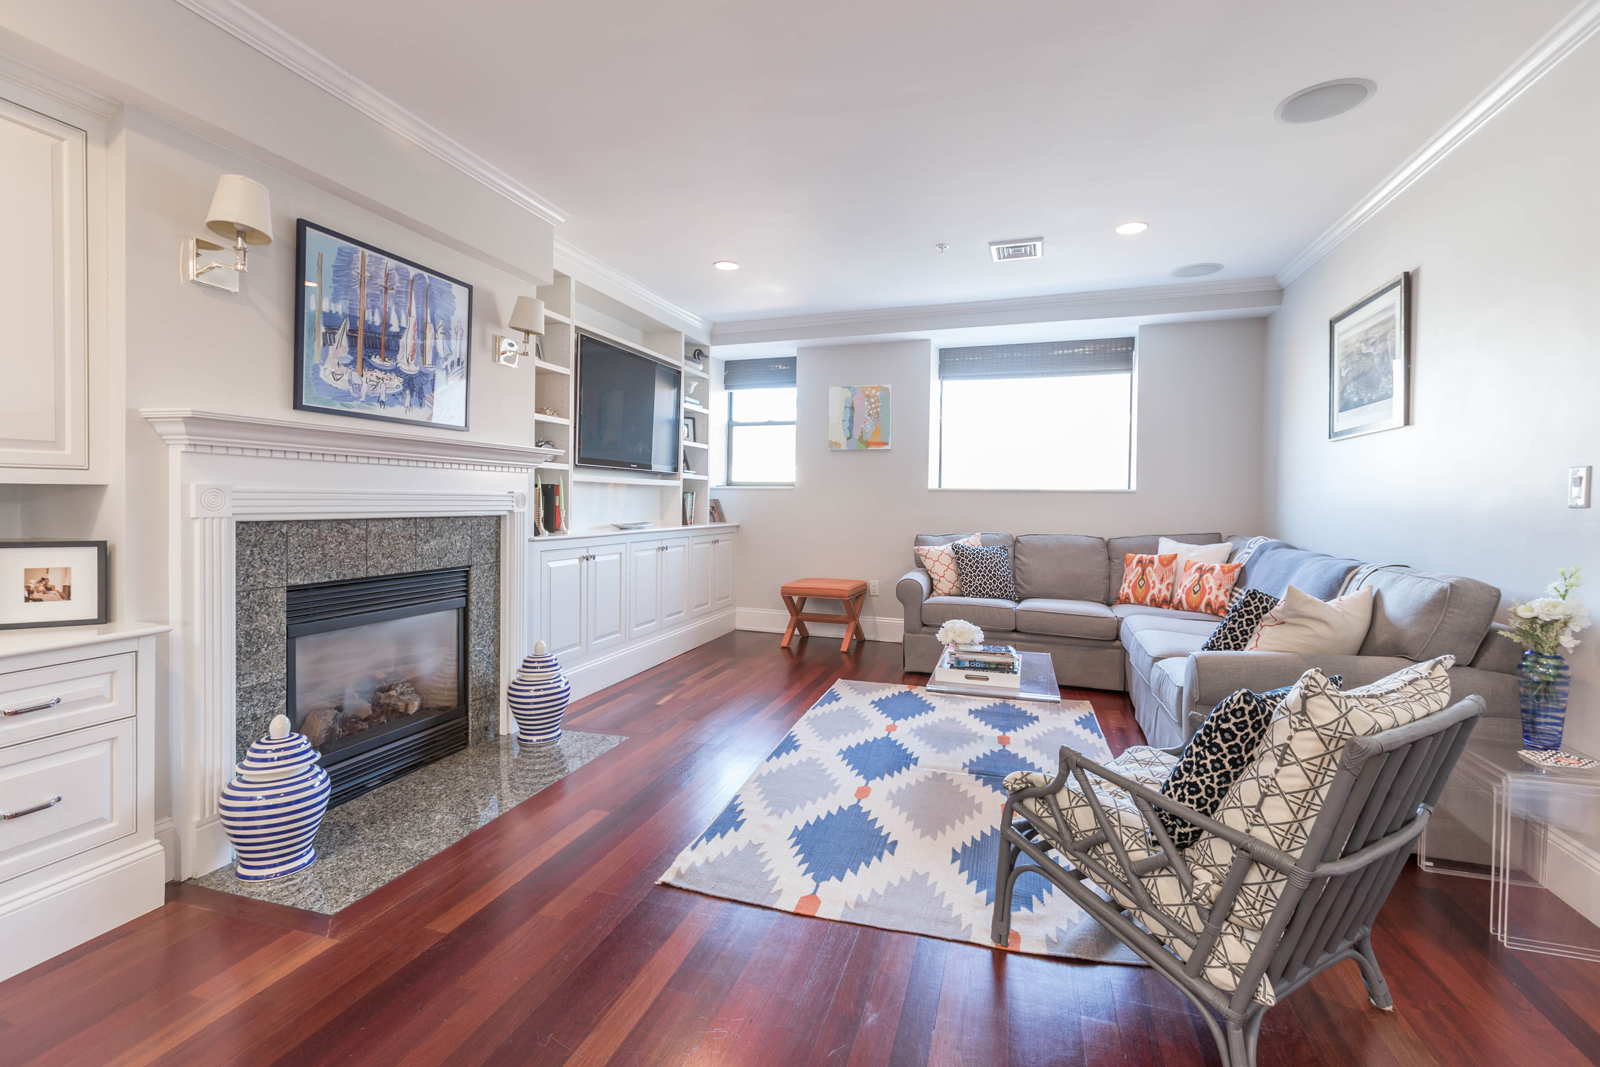 Condominium for Sale at Stunning Commercial Street Property 440 Commercial Street Unit 503 Waterfront, Boston, Massachusetts, 02109 United States